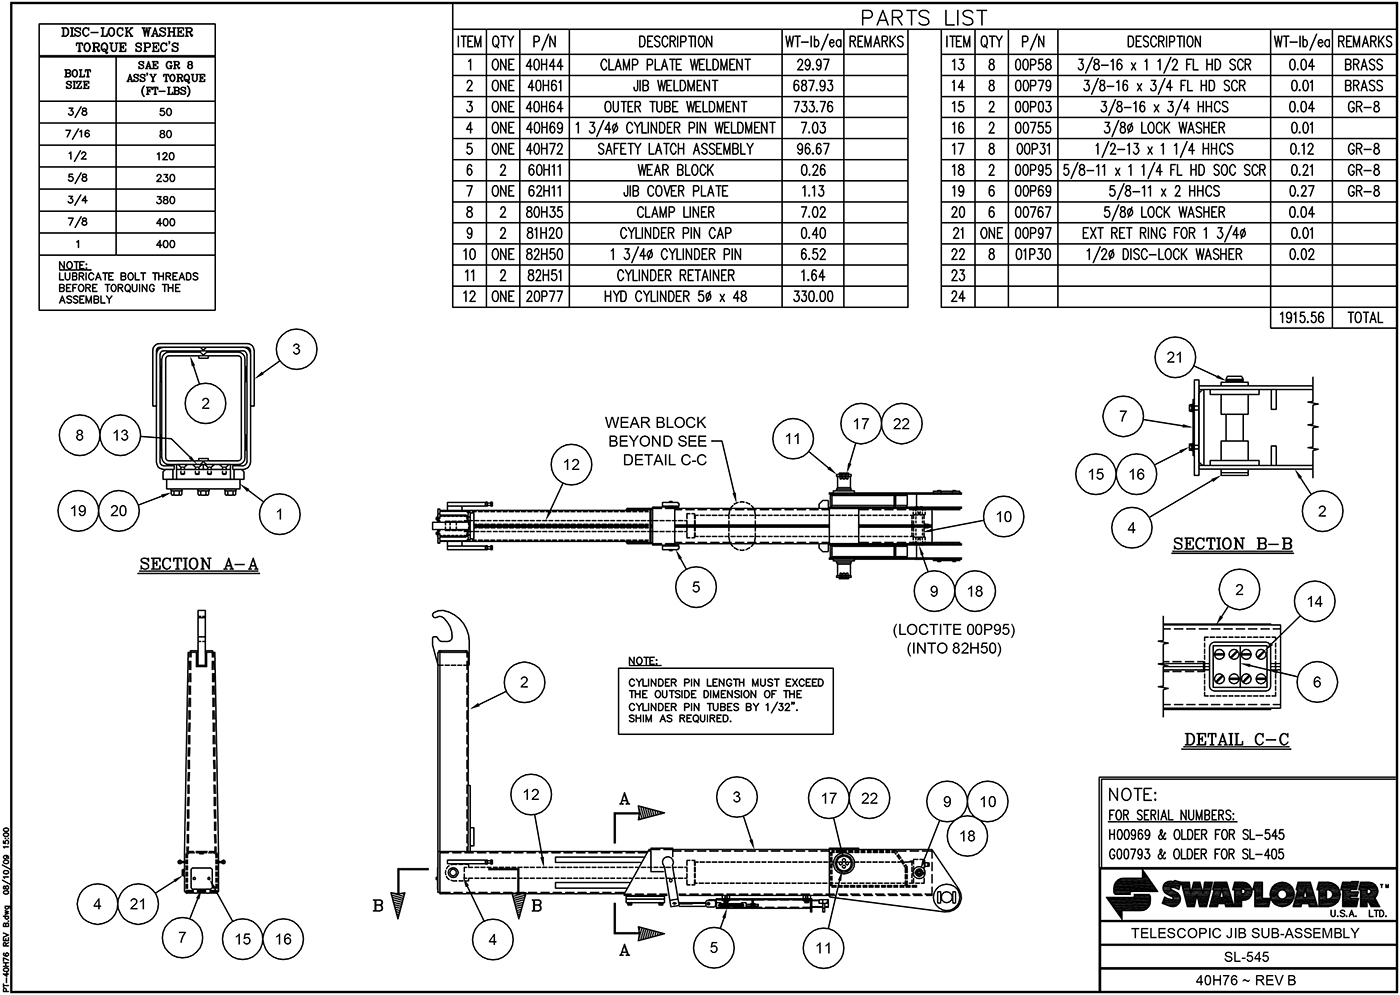 SL-545 Telescopic Jib Sub-Assembly (Revision B) Diagram